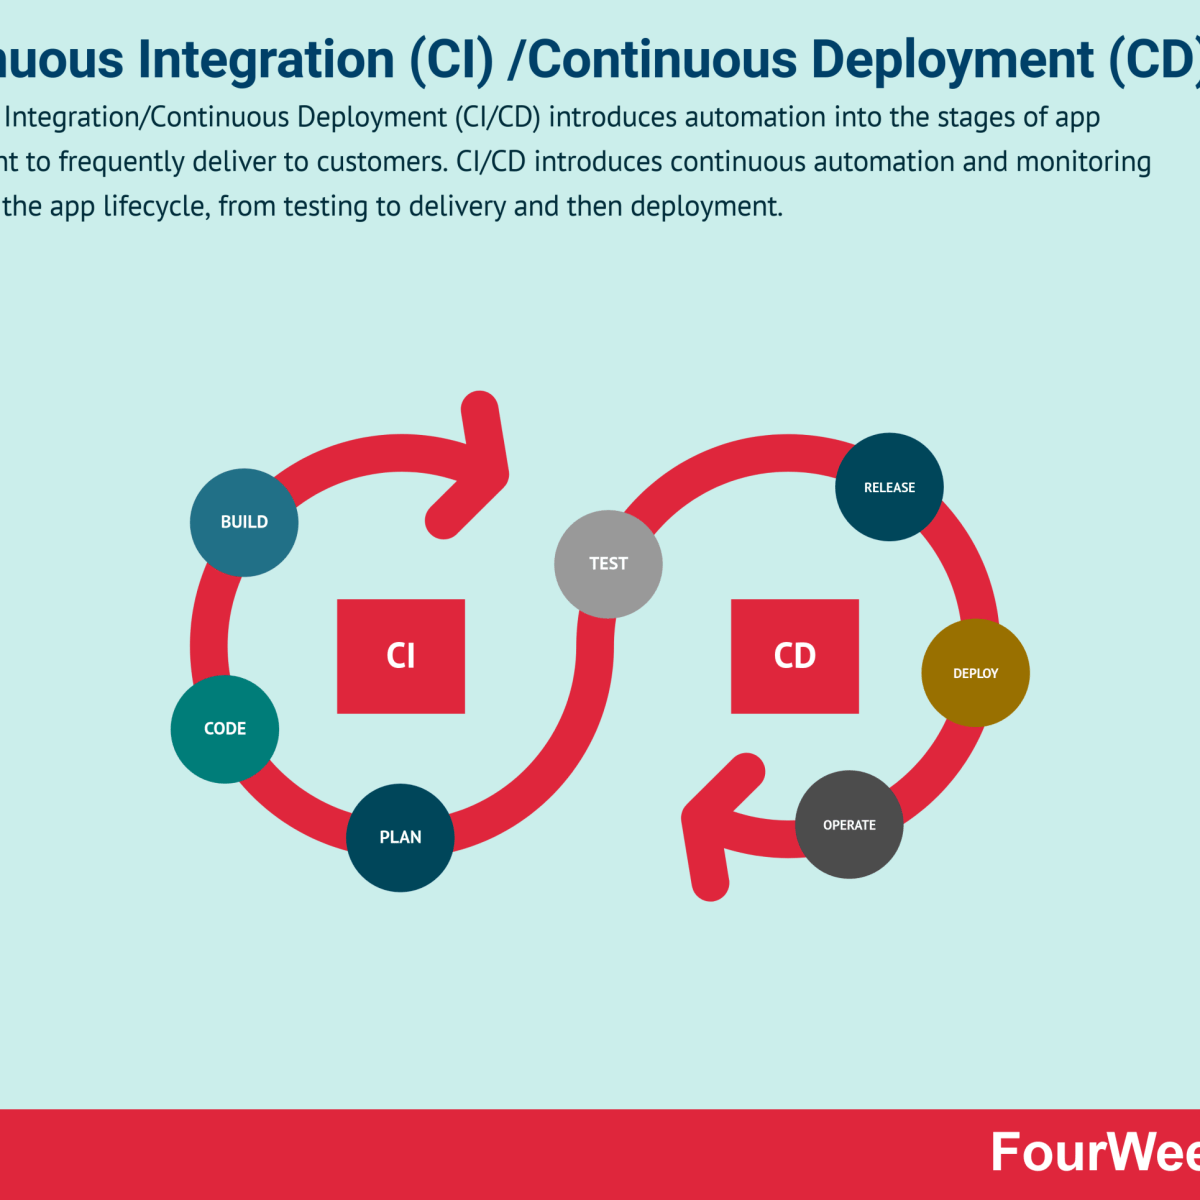 Continuous Integration/Continuous Deployment In A Nutshell